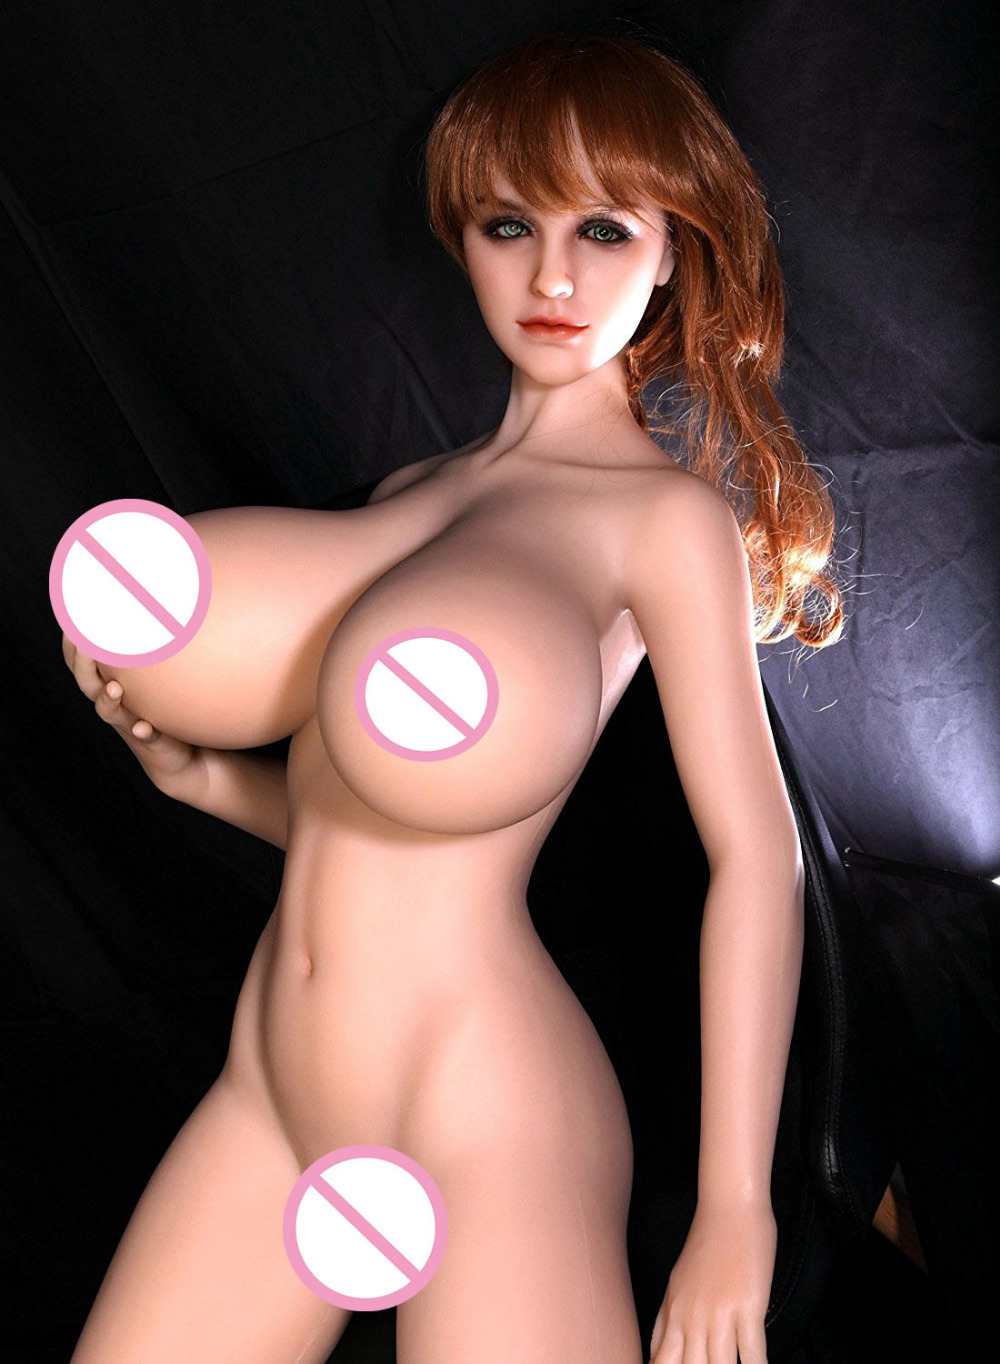 100% Real silicone sex dolls High quality 165cm realistic robot love doll big breast oral vagina adult full life sexy anime doll 2017 new real silicone sex dolls 135cm robot japanese realistic love doll sexy anime big breast mini vagina adult full life toys